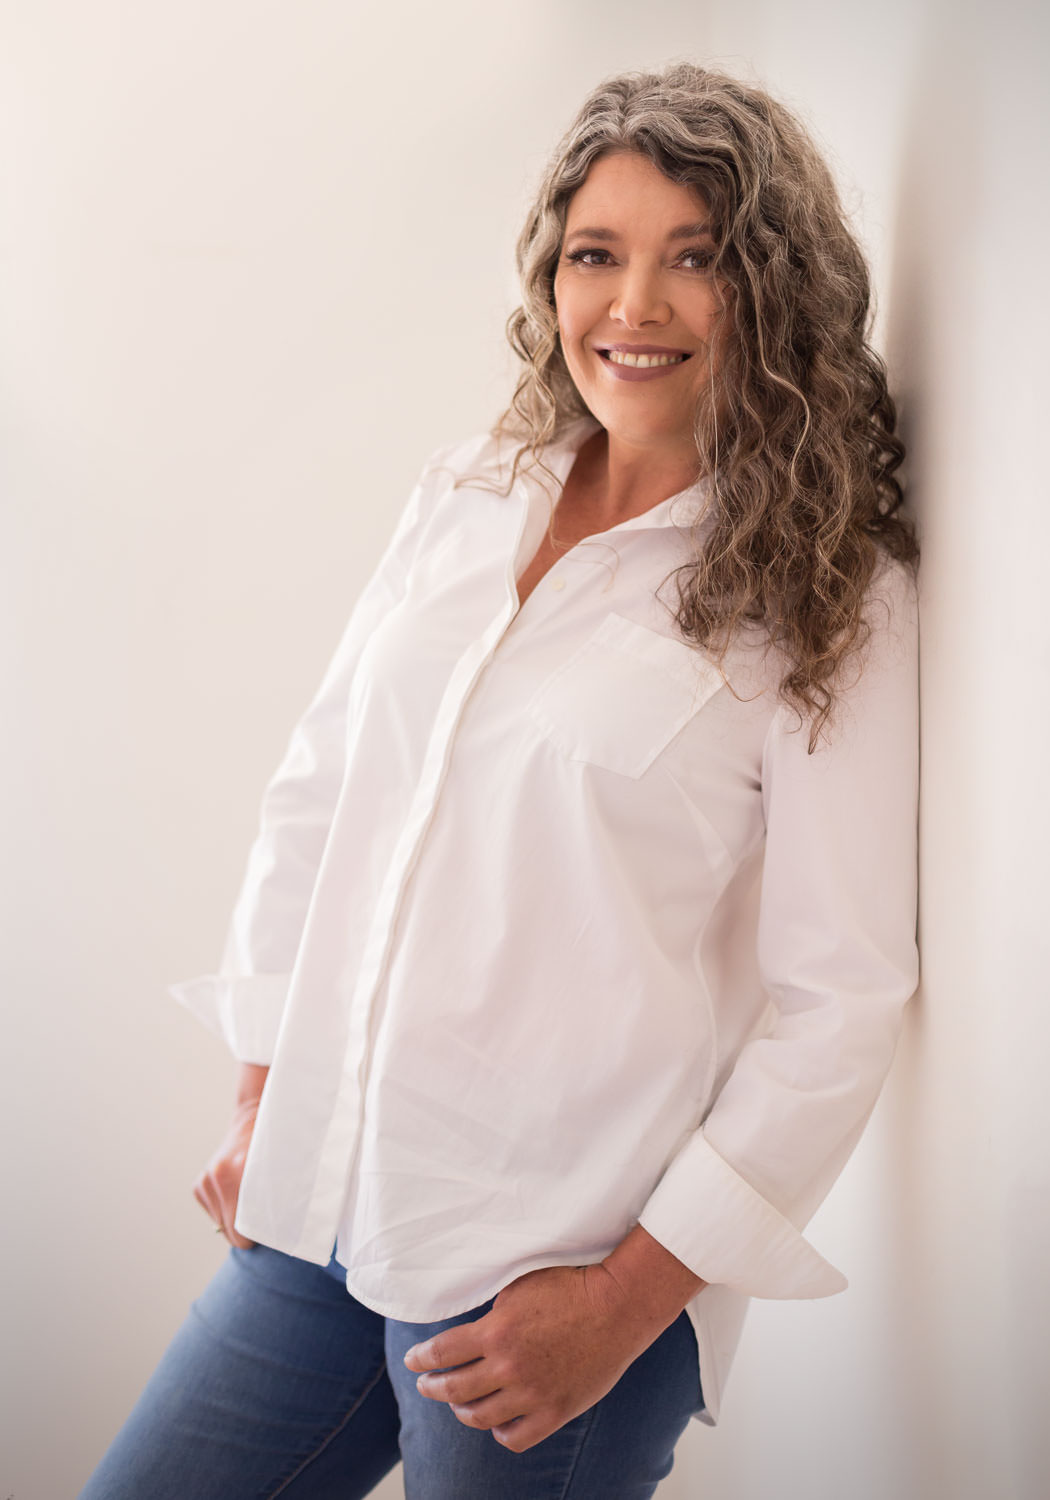 Sunshine Coast businesswoman personal branding photography